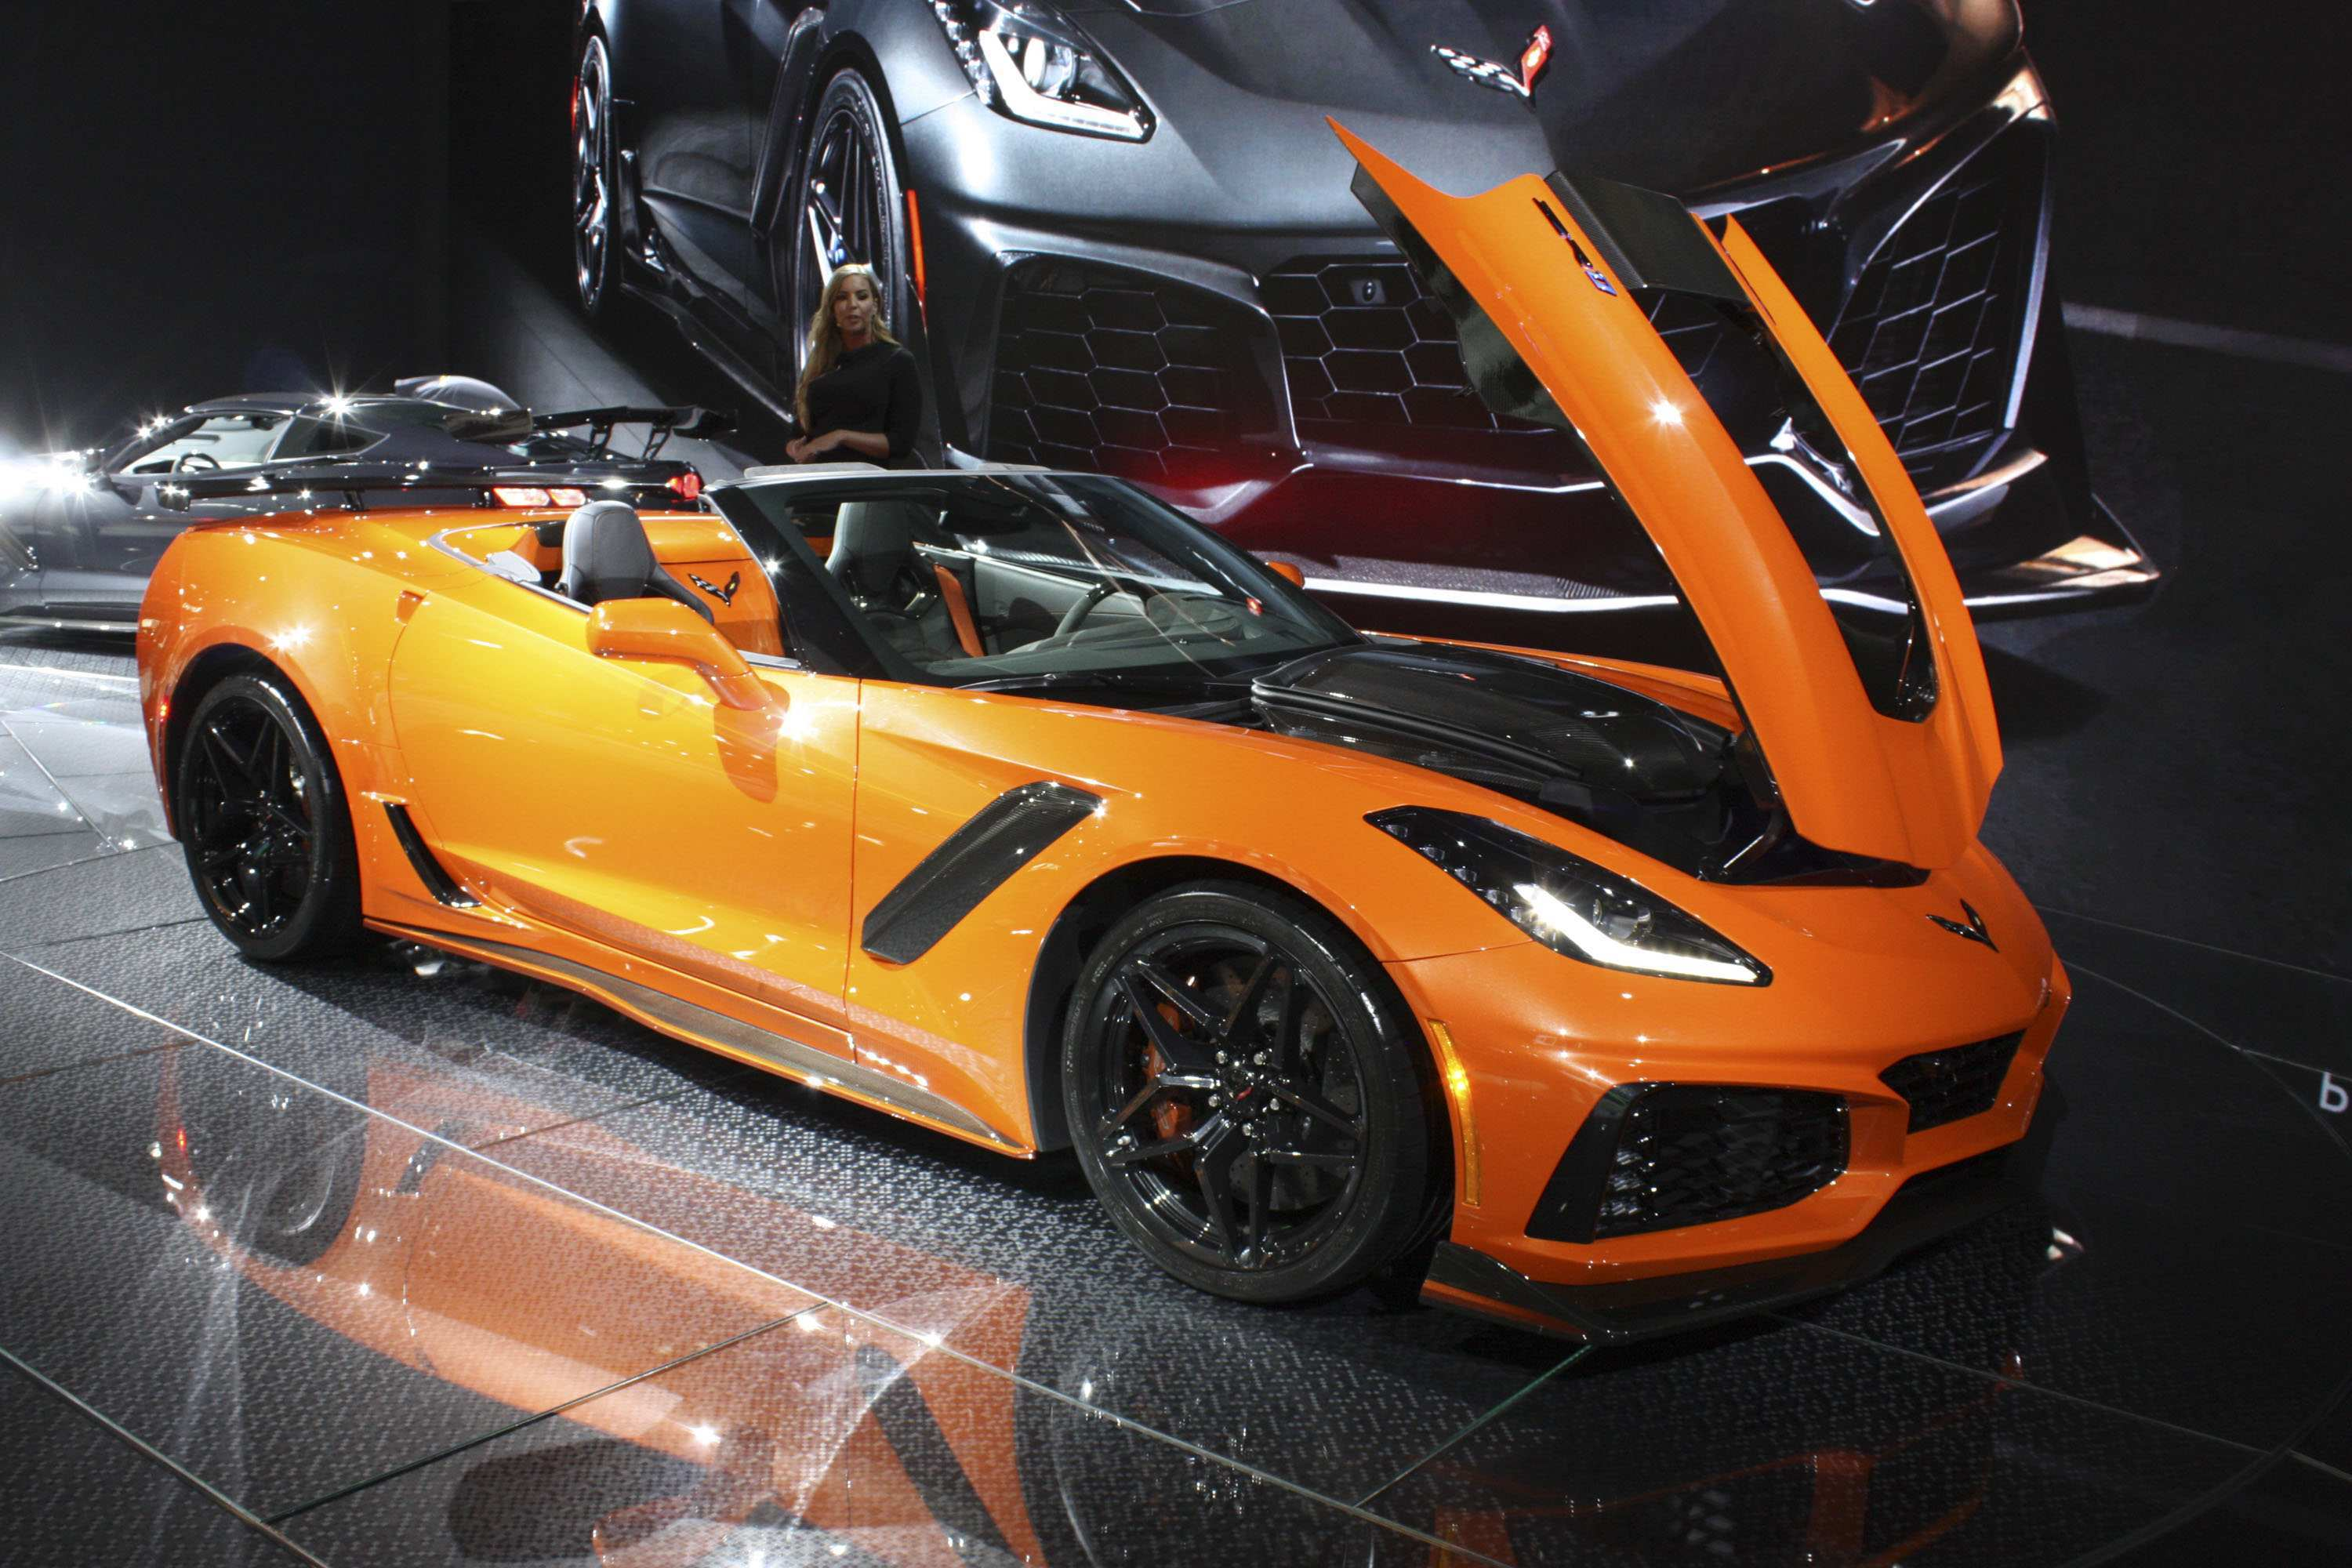 67 The Best 2019 Corvette ZR1 Price Design And Review